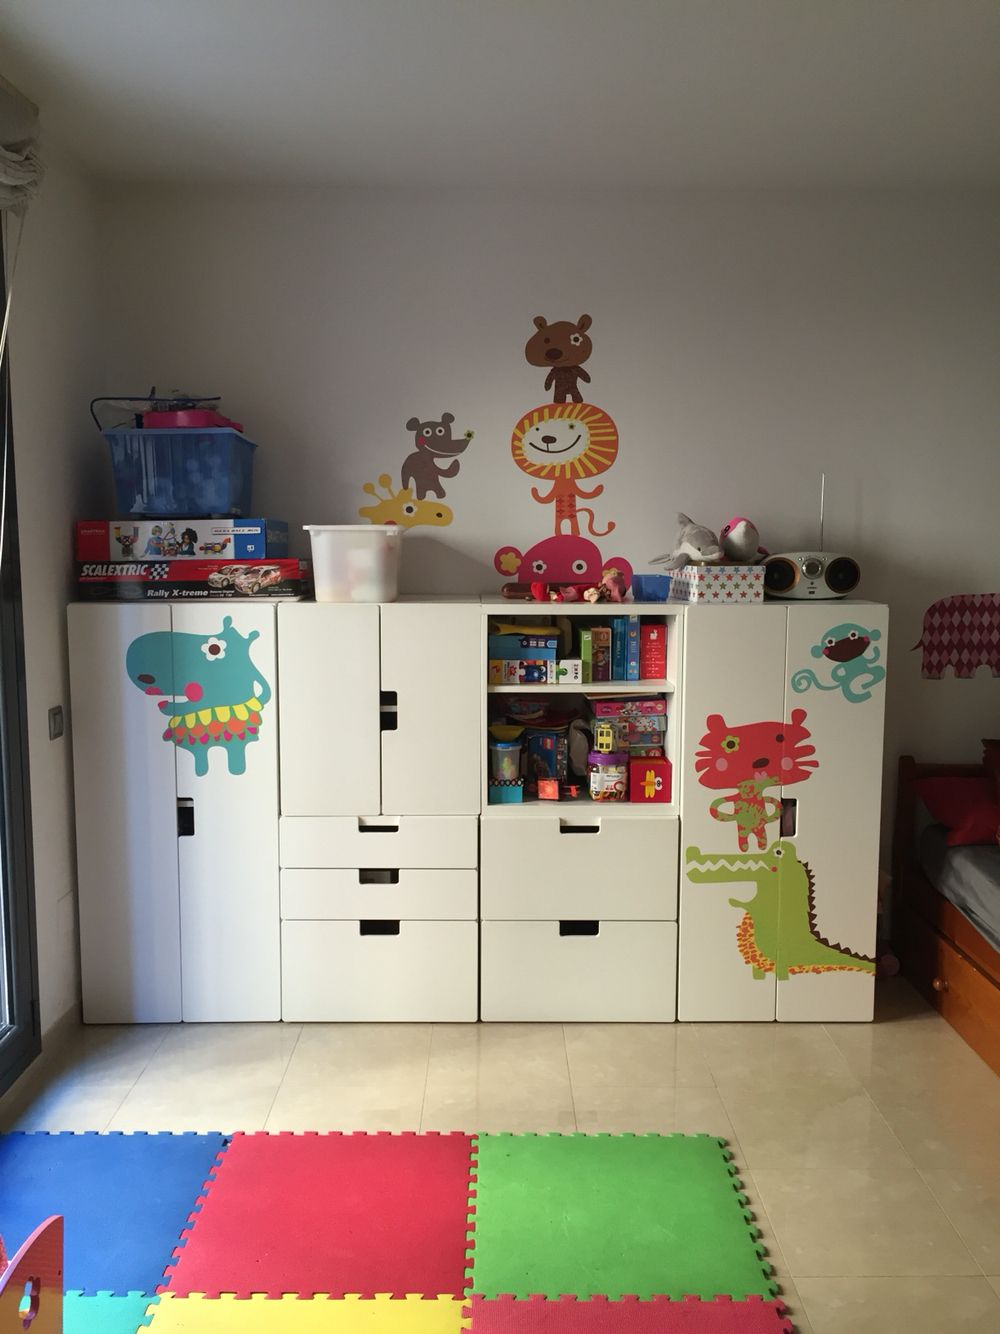 Ikéa Stuva Ikea Stuva Kids Room Núria Antonijoan Kids Room Ideas Pinte